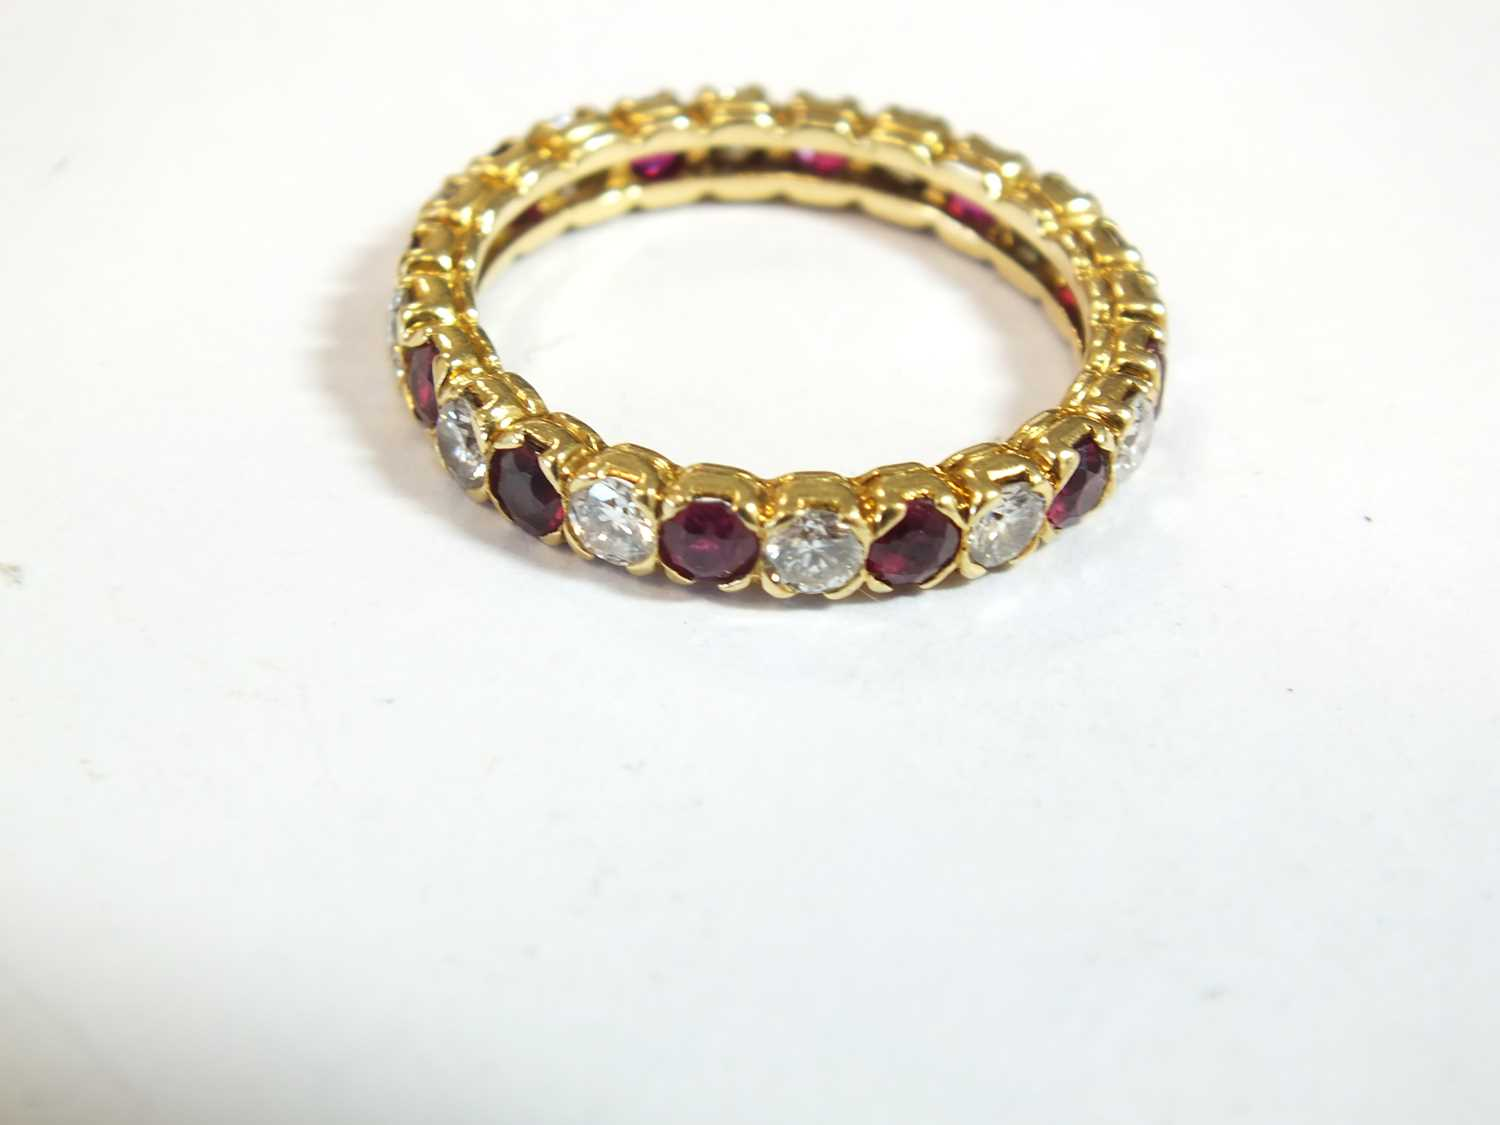 An 18ct gold ruby and diamond full eternity ring by Boucheron - Image 6 of 8